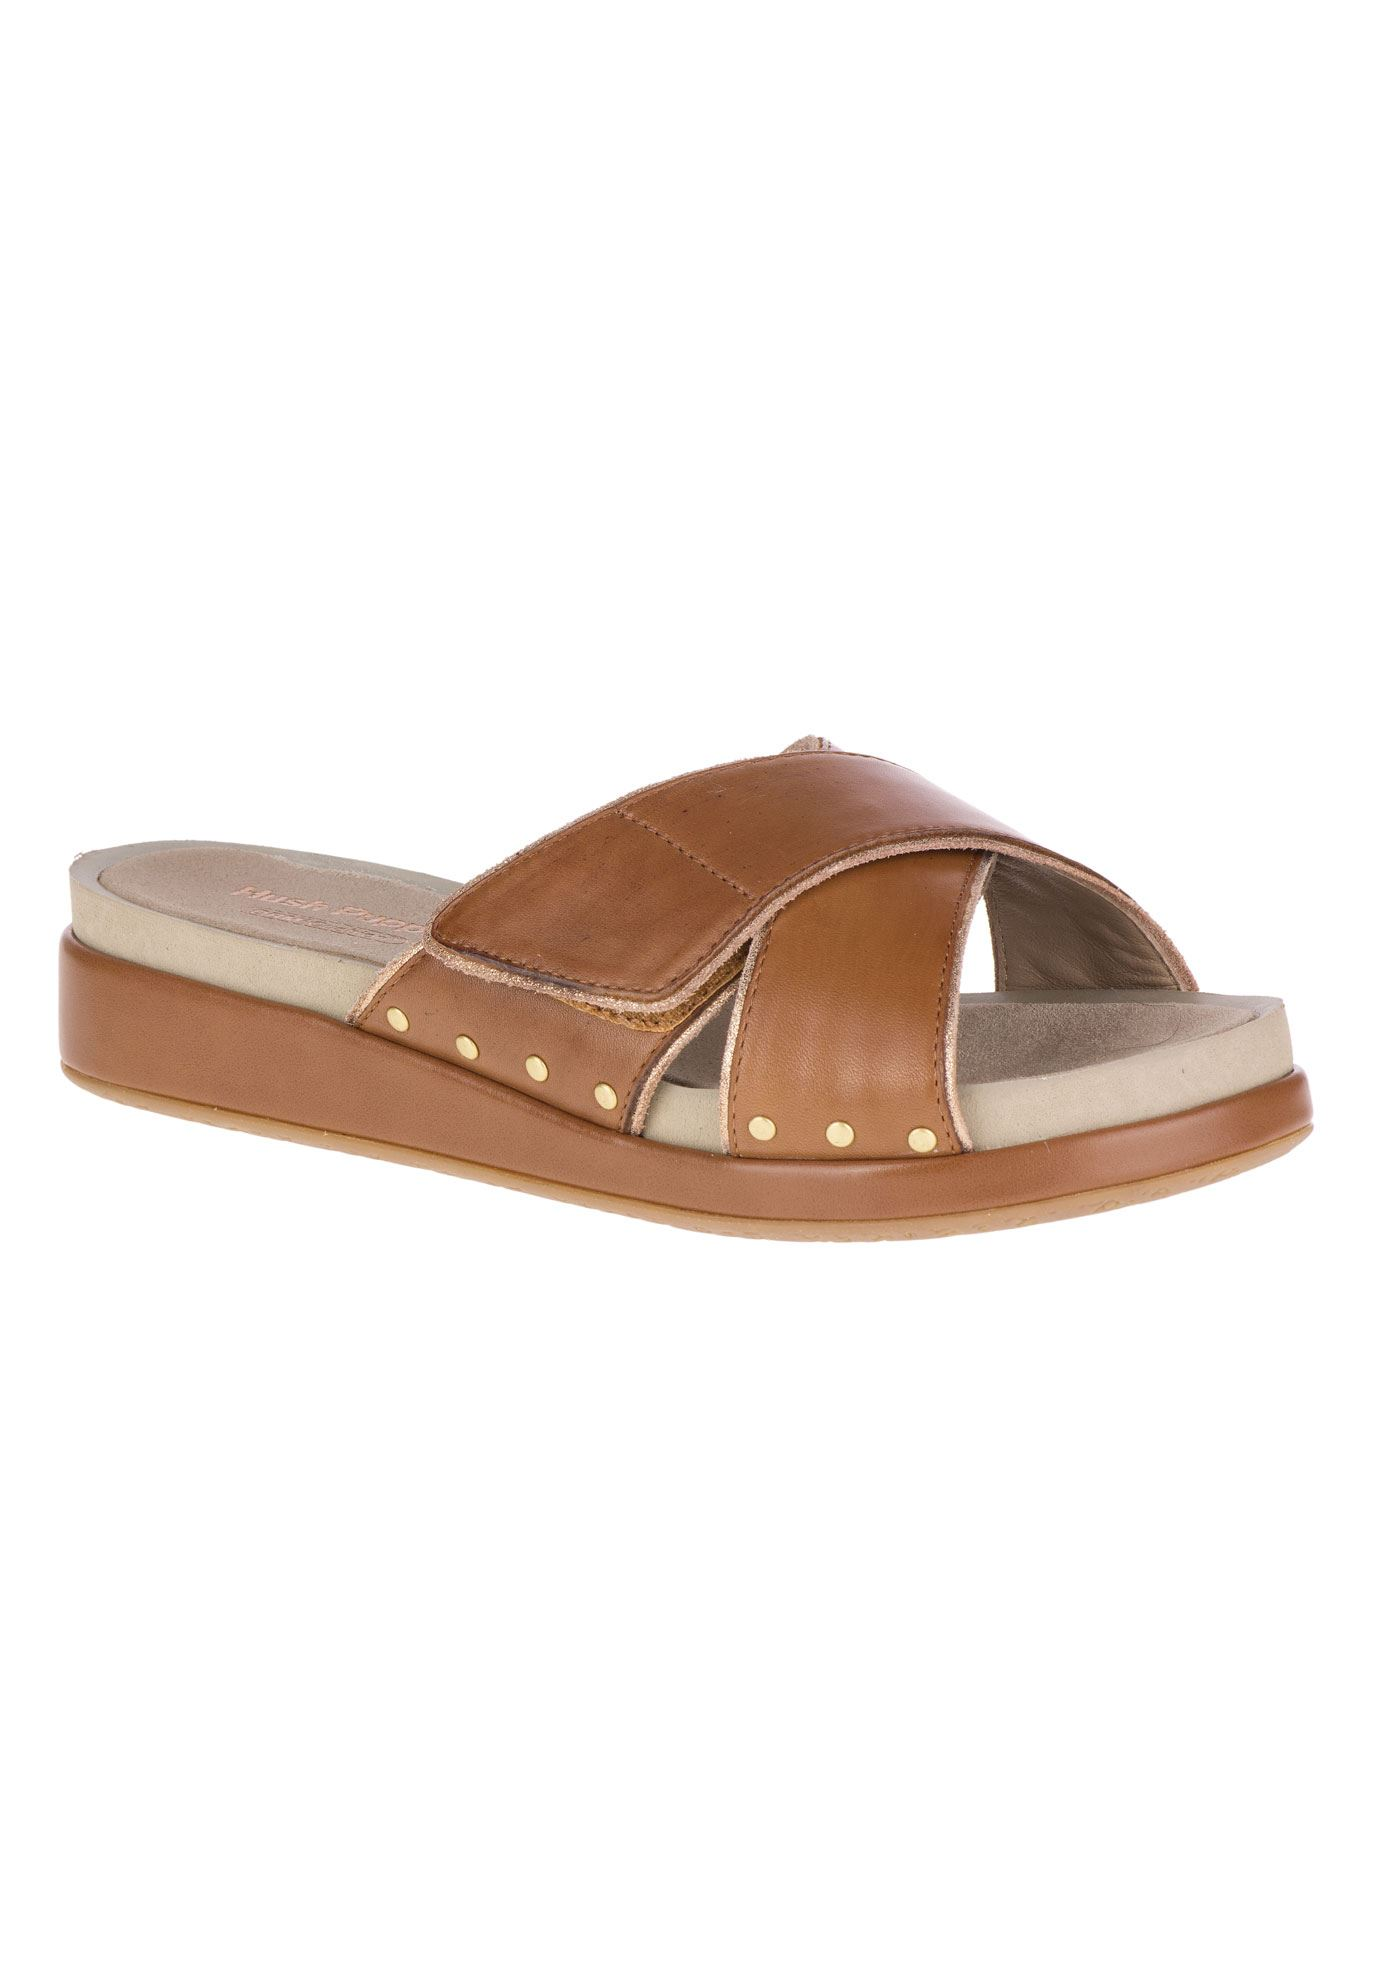 Chrysta Xband Slide Sandals by Hush Puppies® cheap fake low shipping fee sale online get authentic FHL598BGf